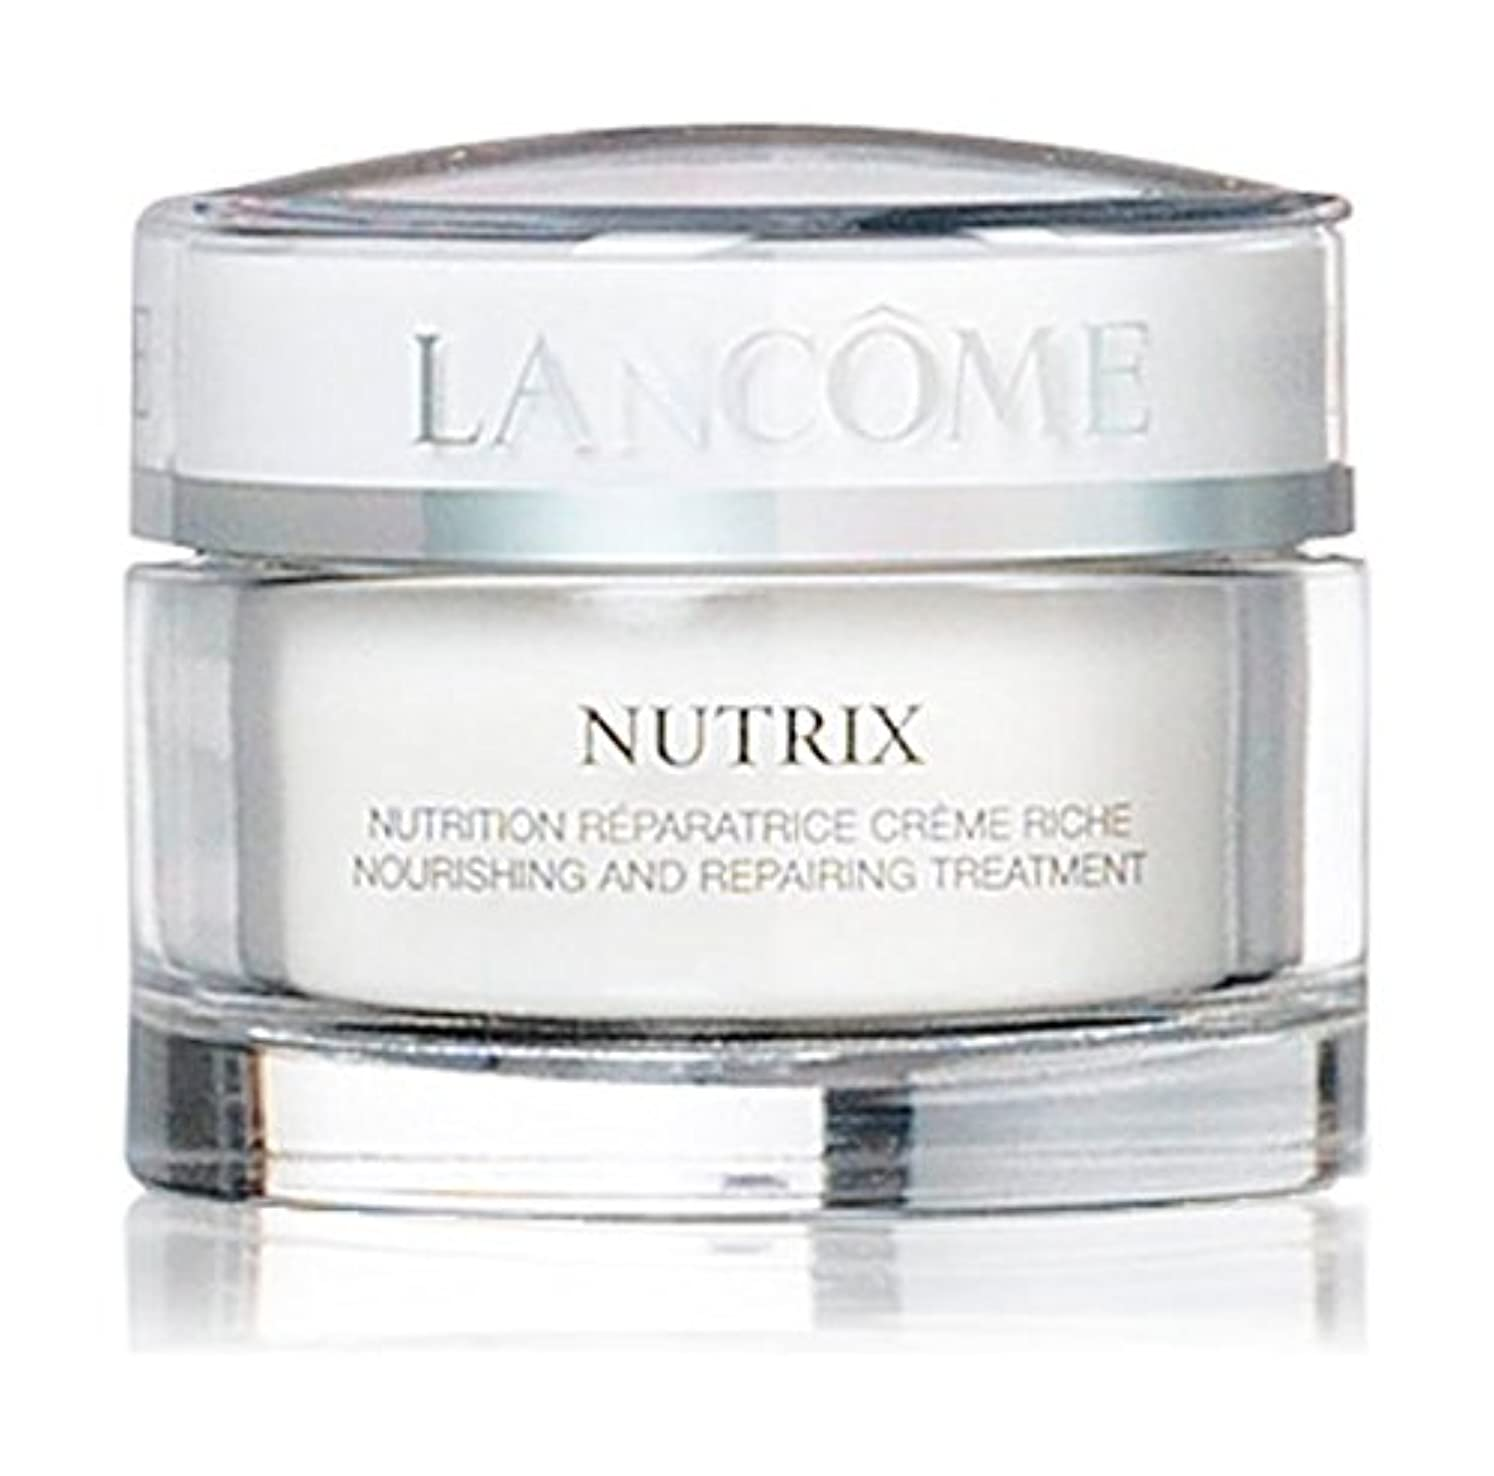 カラスうがい薬指定ランコム Nutrix Nourishing And Repairing Treatment Rich Cream - For Very Dry, Sensitive Or Irritated Skin 50ml/1.7oz...